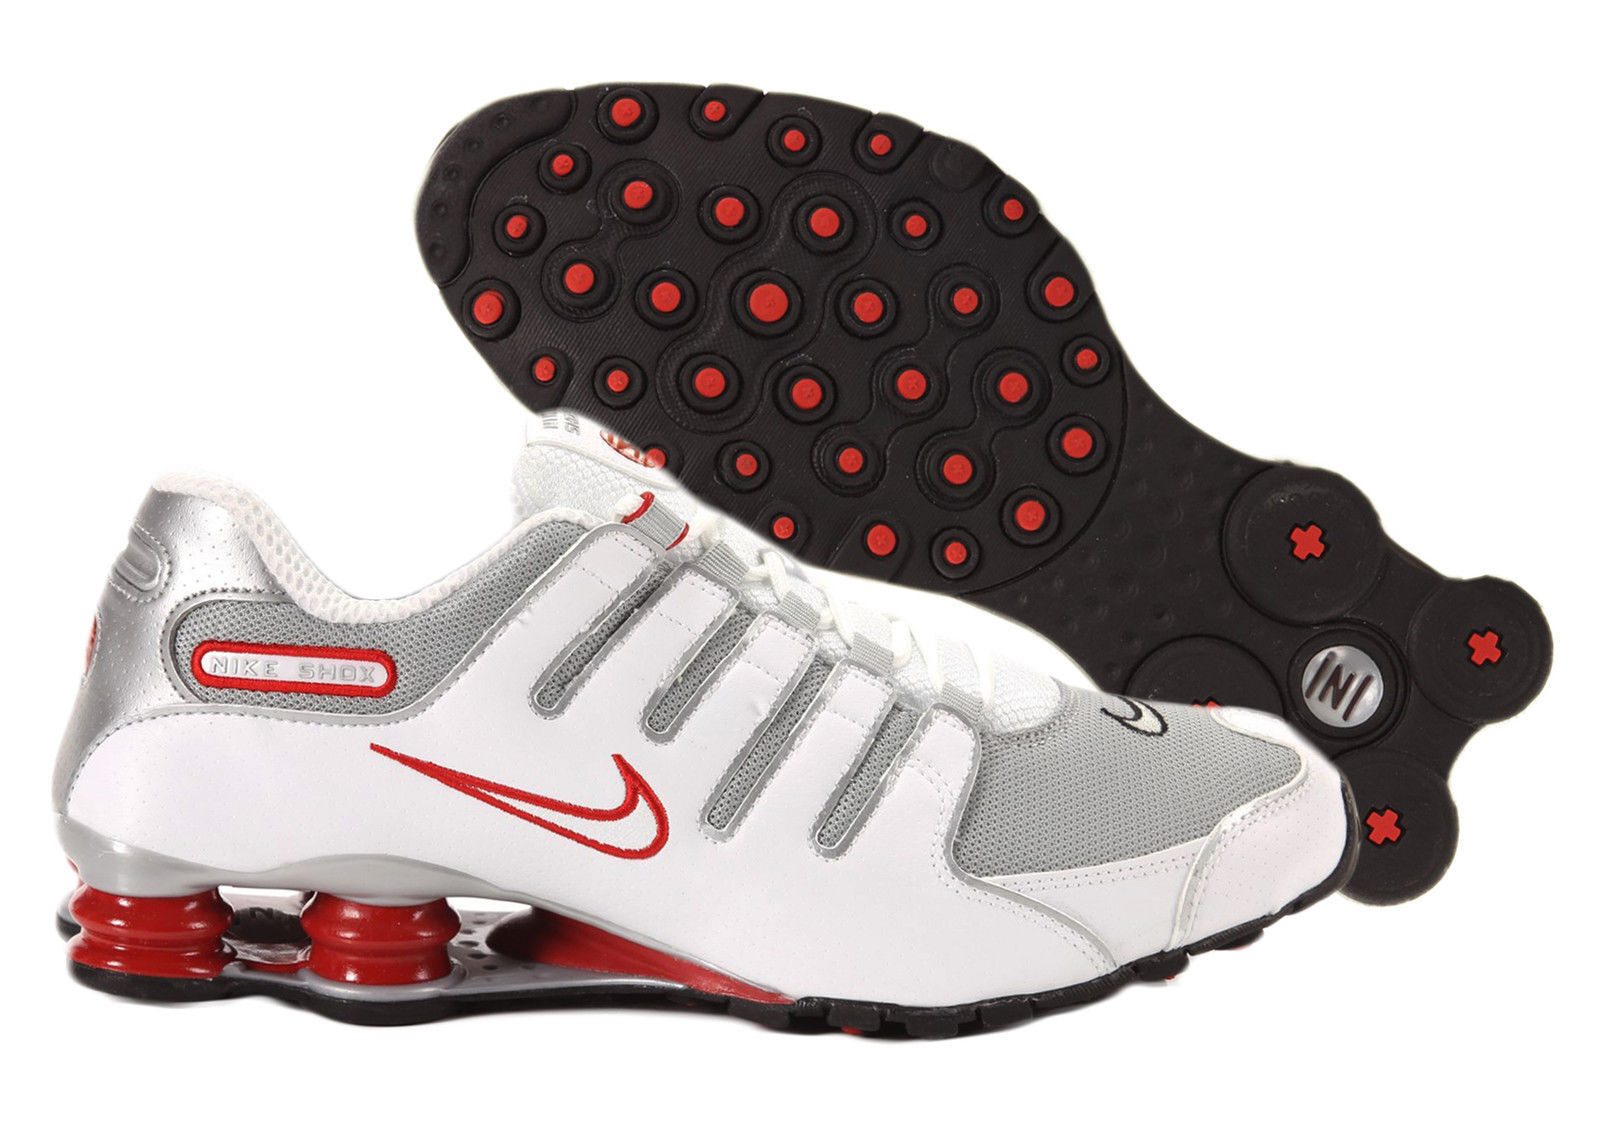 huge selection of ba1f4 63713 Mens Nike Nike Nike Shox NZ Premium Sneakers New, White Red Silver 378341- 104